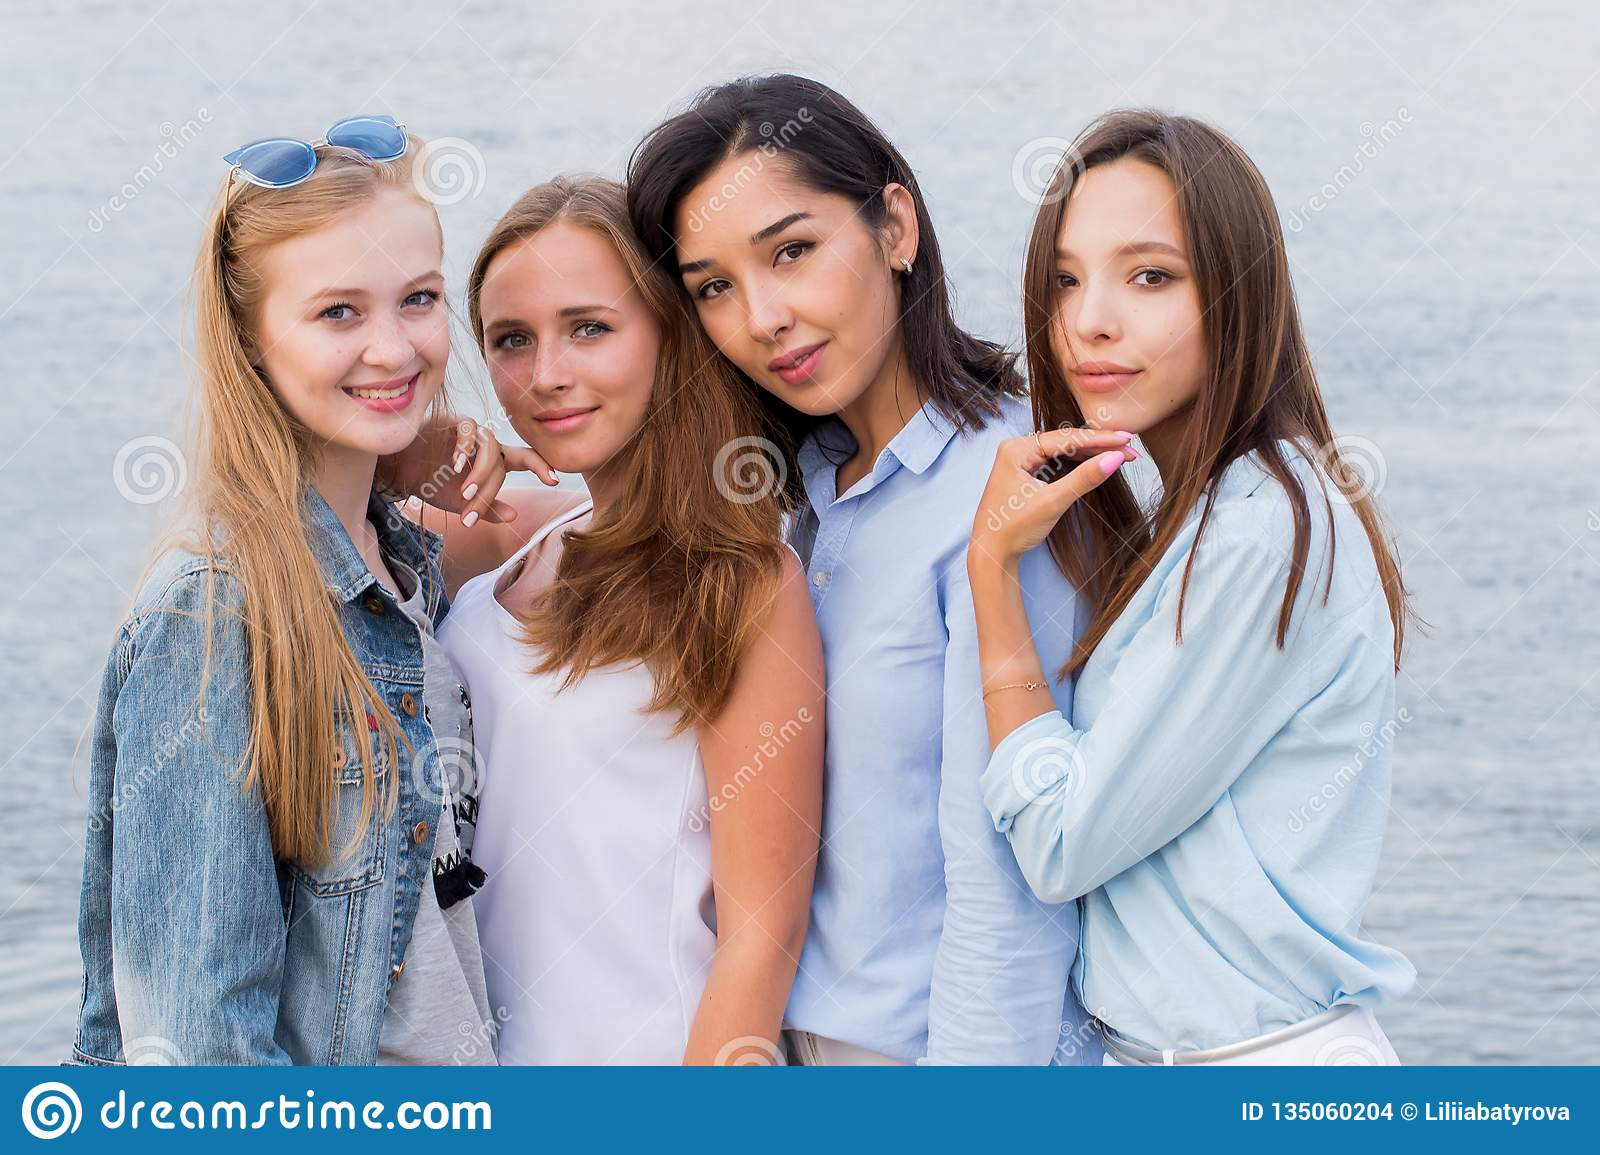 Portrait of four young female friends walking on the sea shore looking at camera laughing